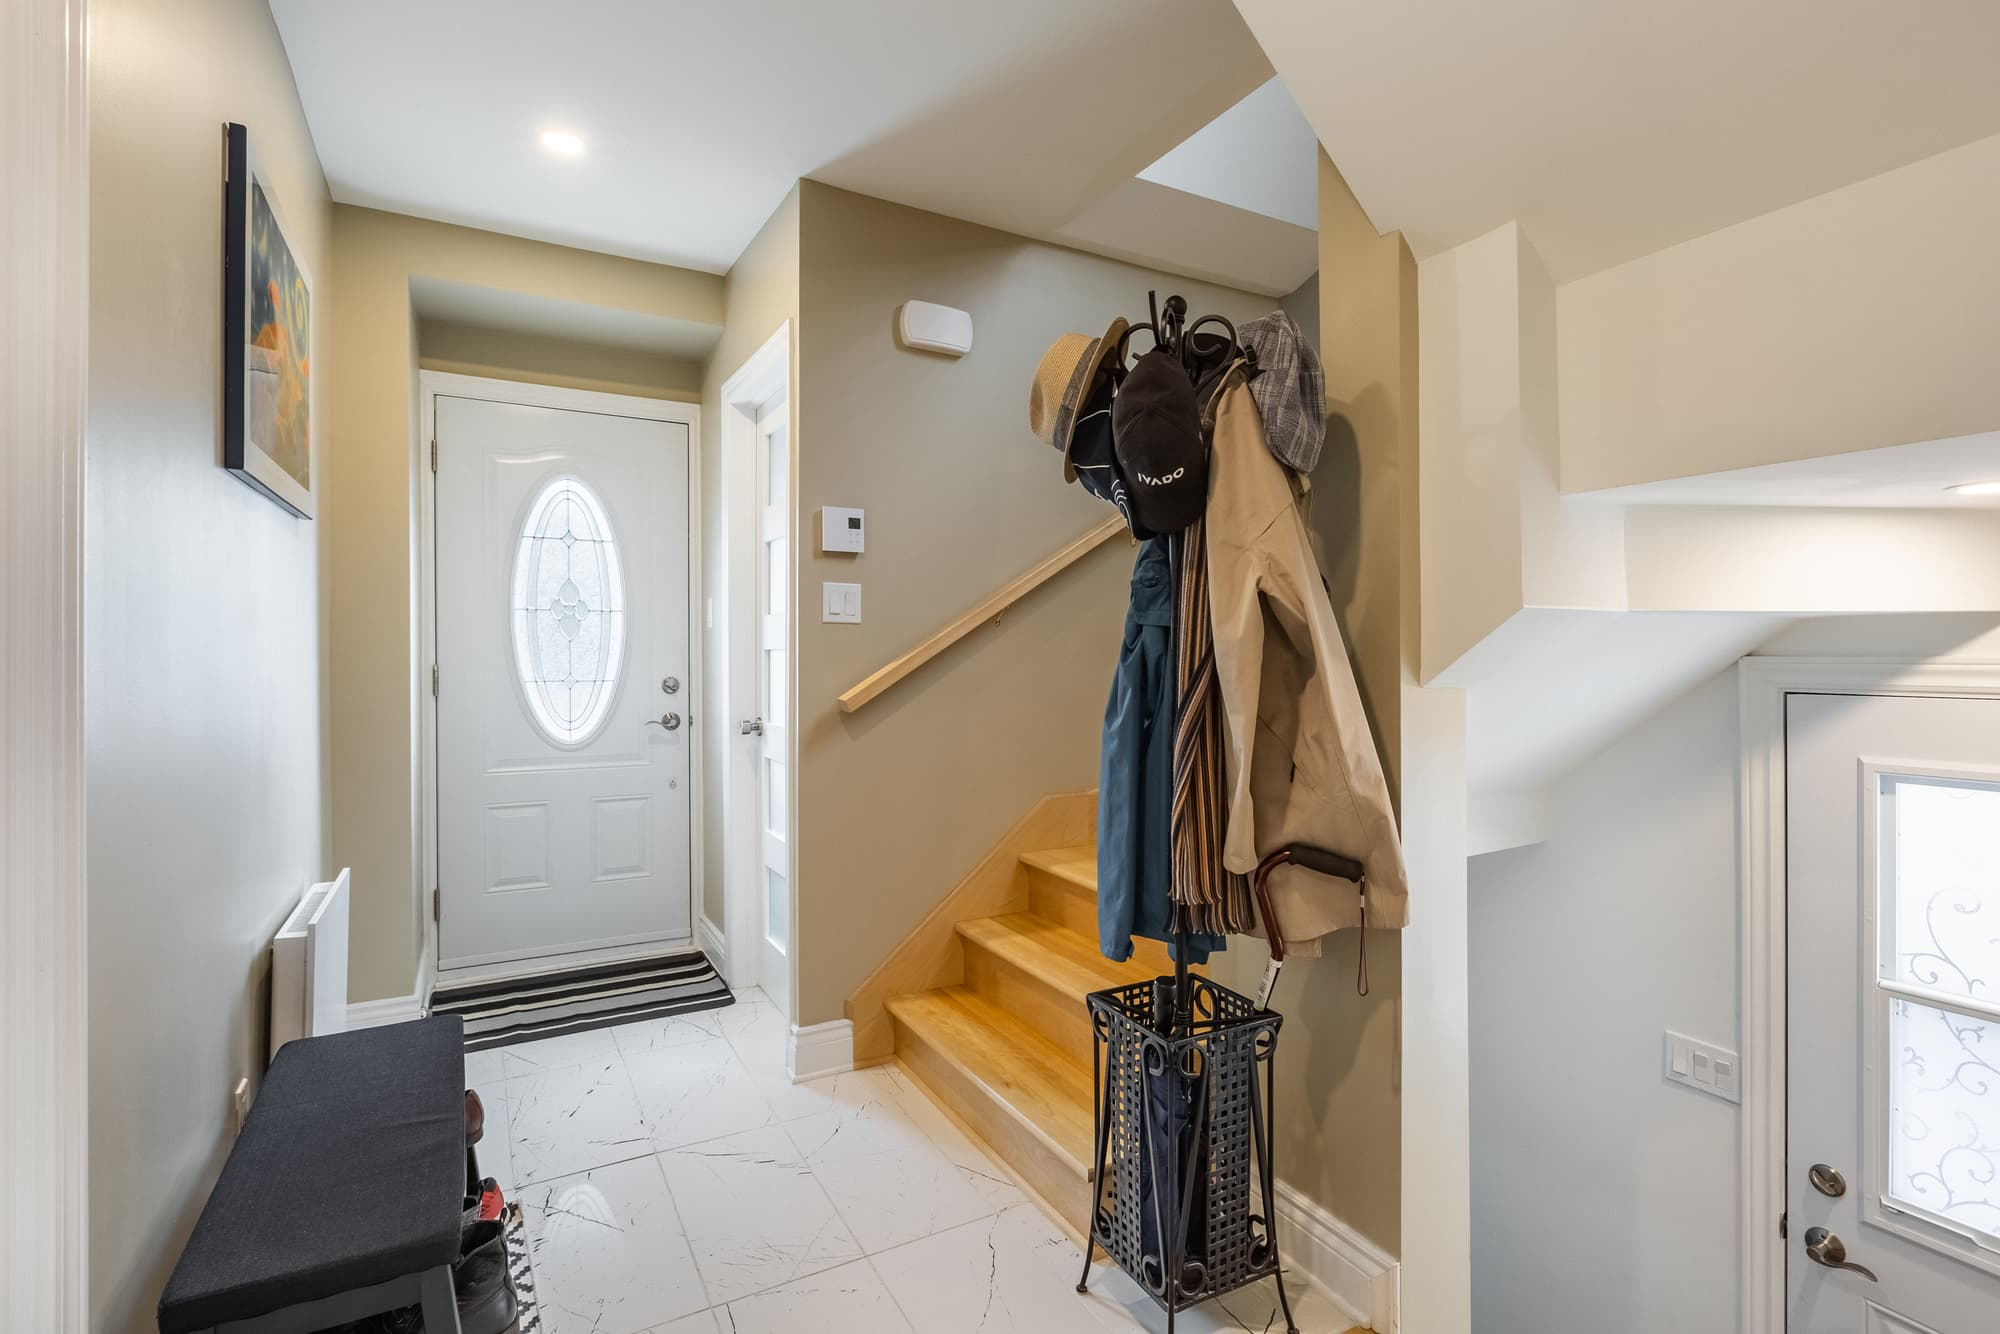 entryway with white door and coat hanger